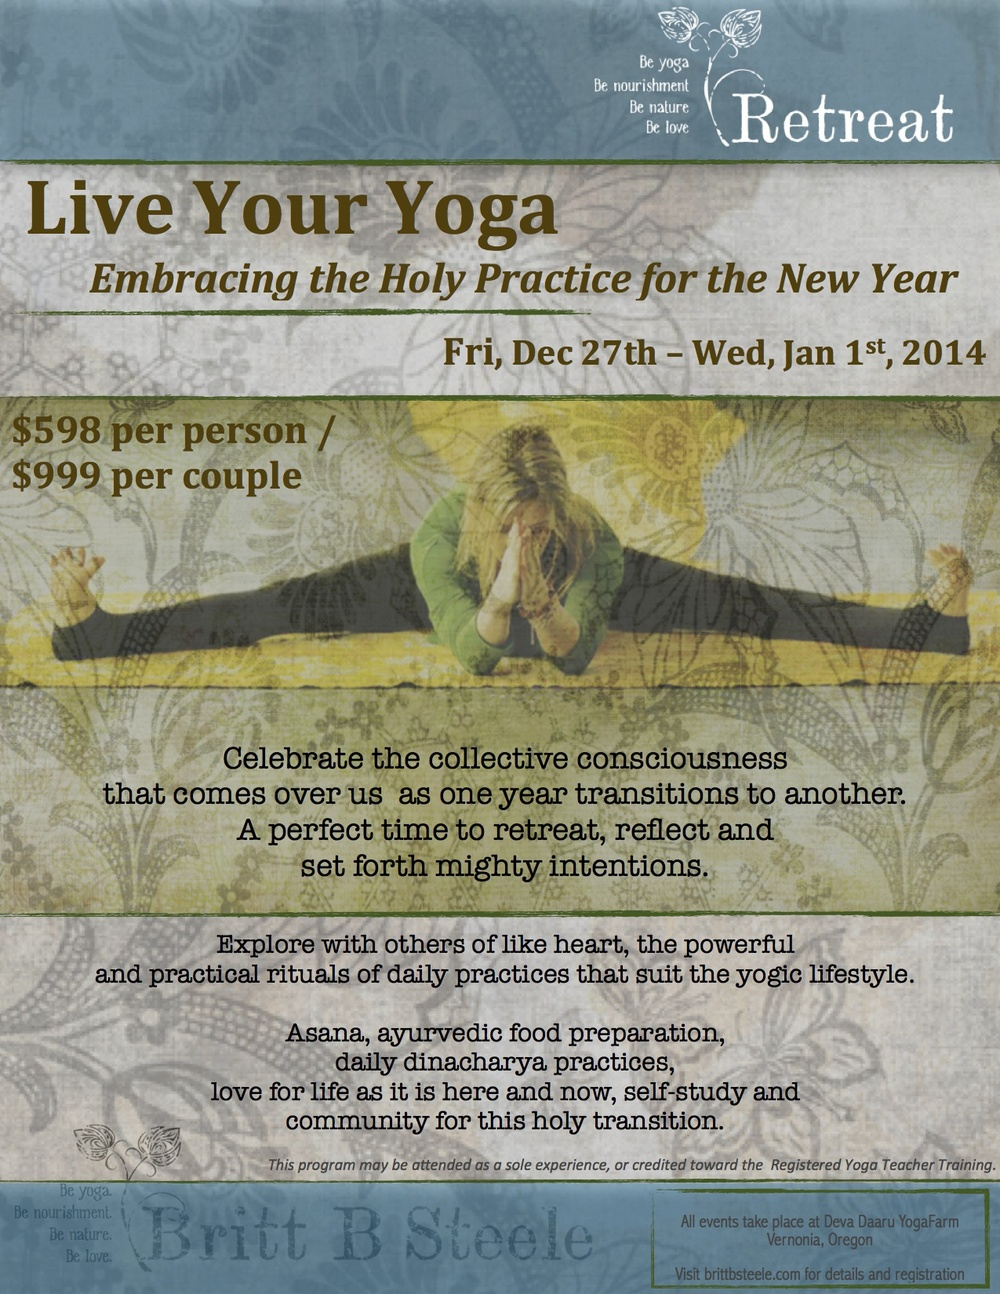 Retreat- New Year 2014 - Live Your Yoga.jpg